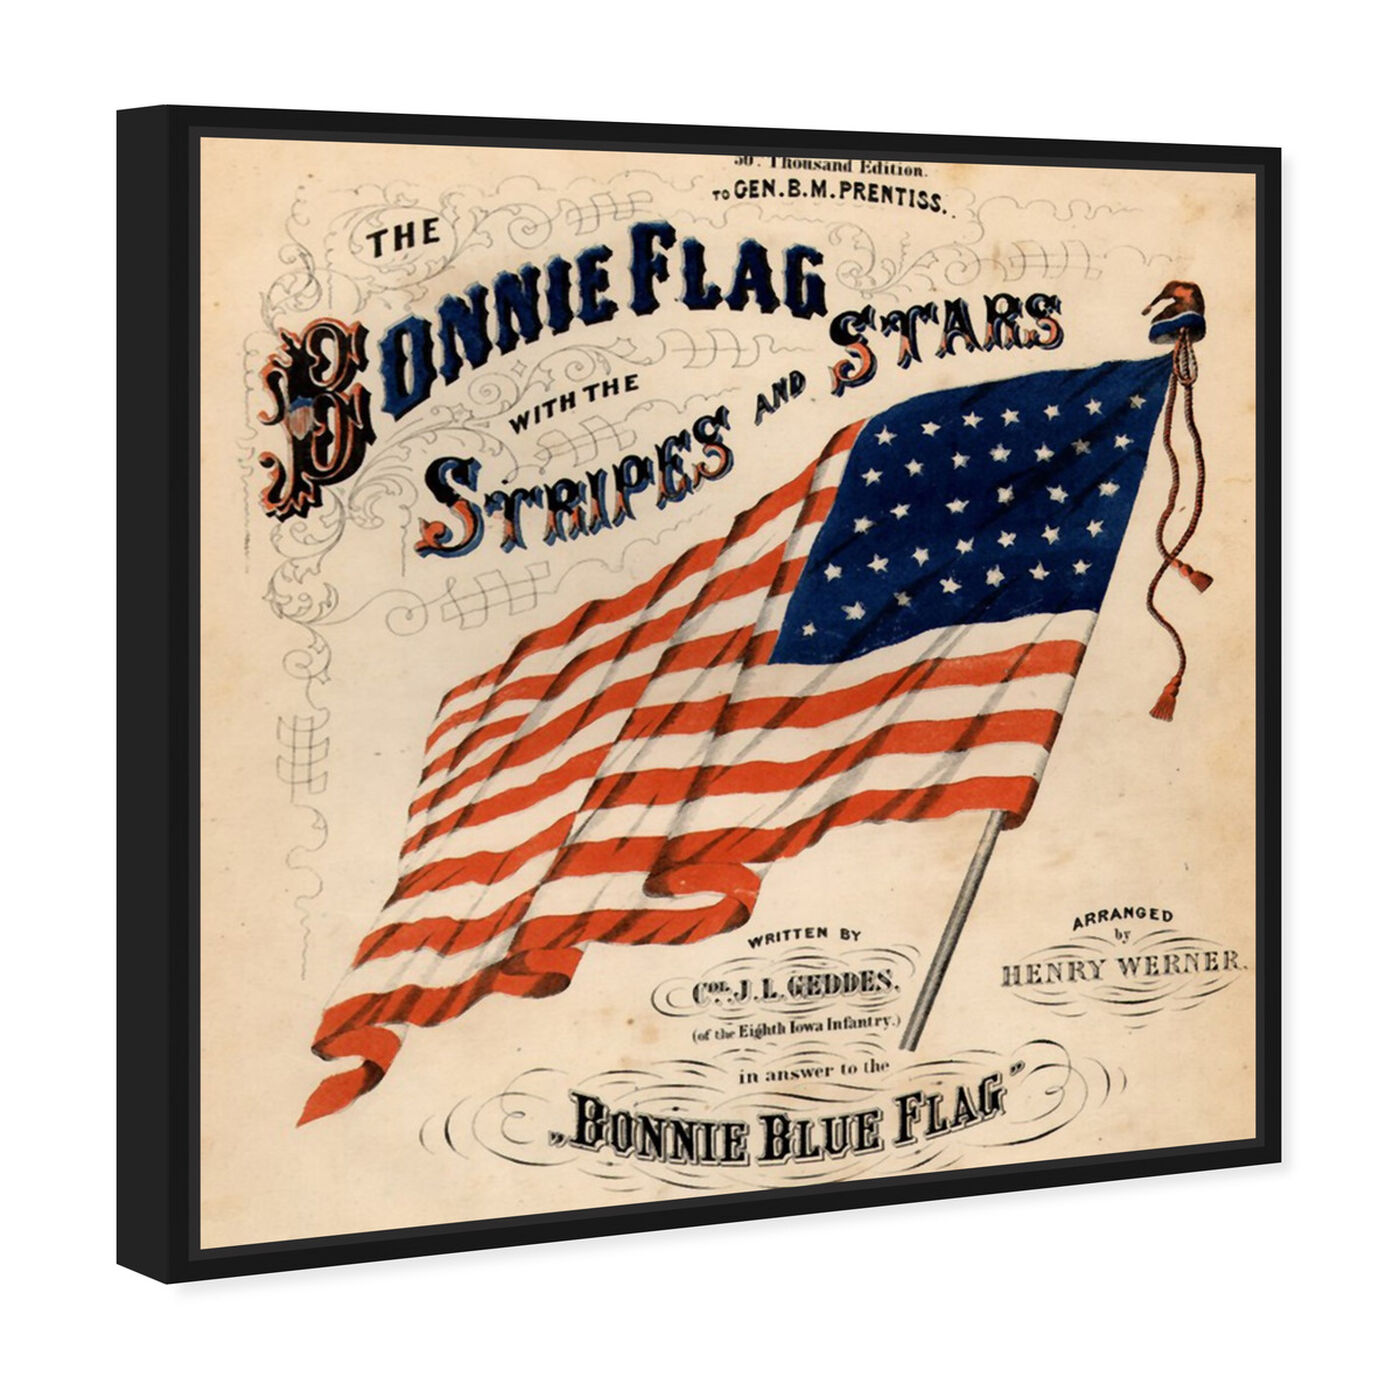 Angled view of Bonnie Flag featuring americana and patriotic and us flags art.